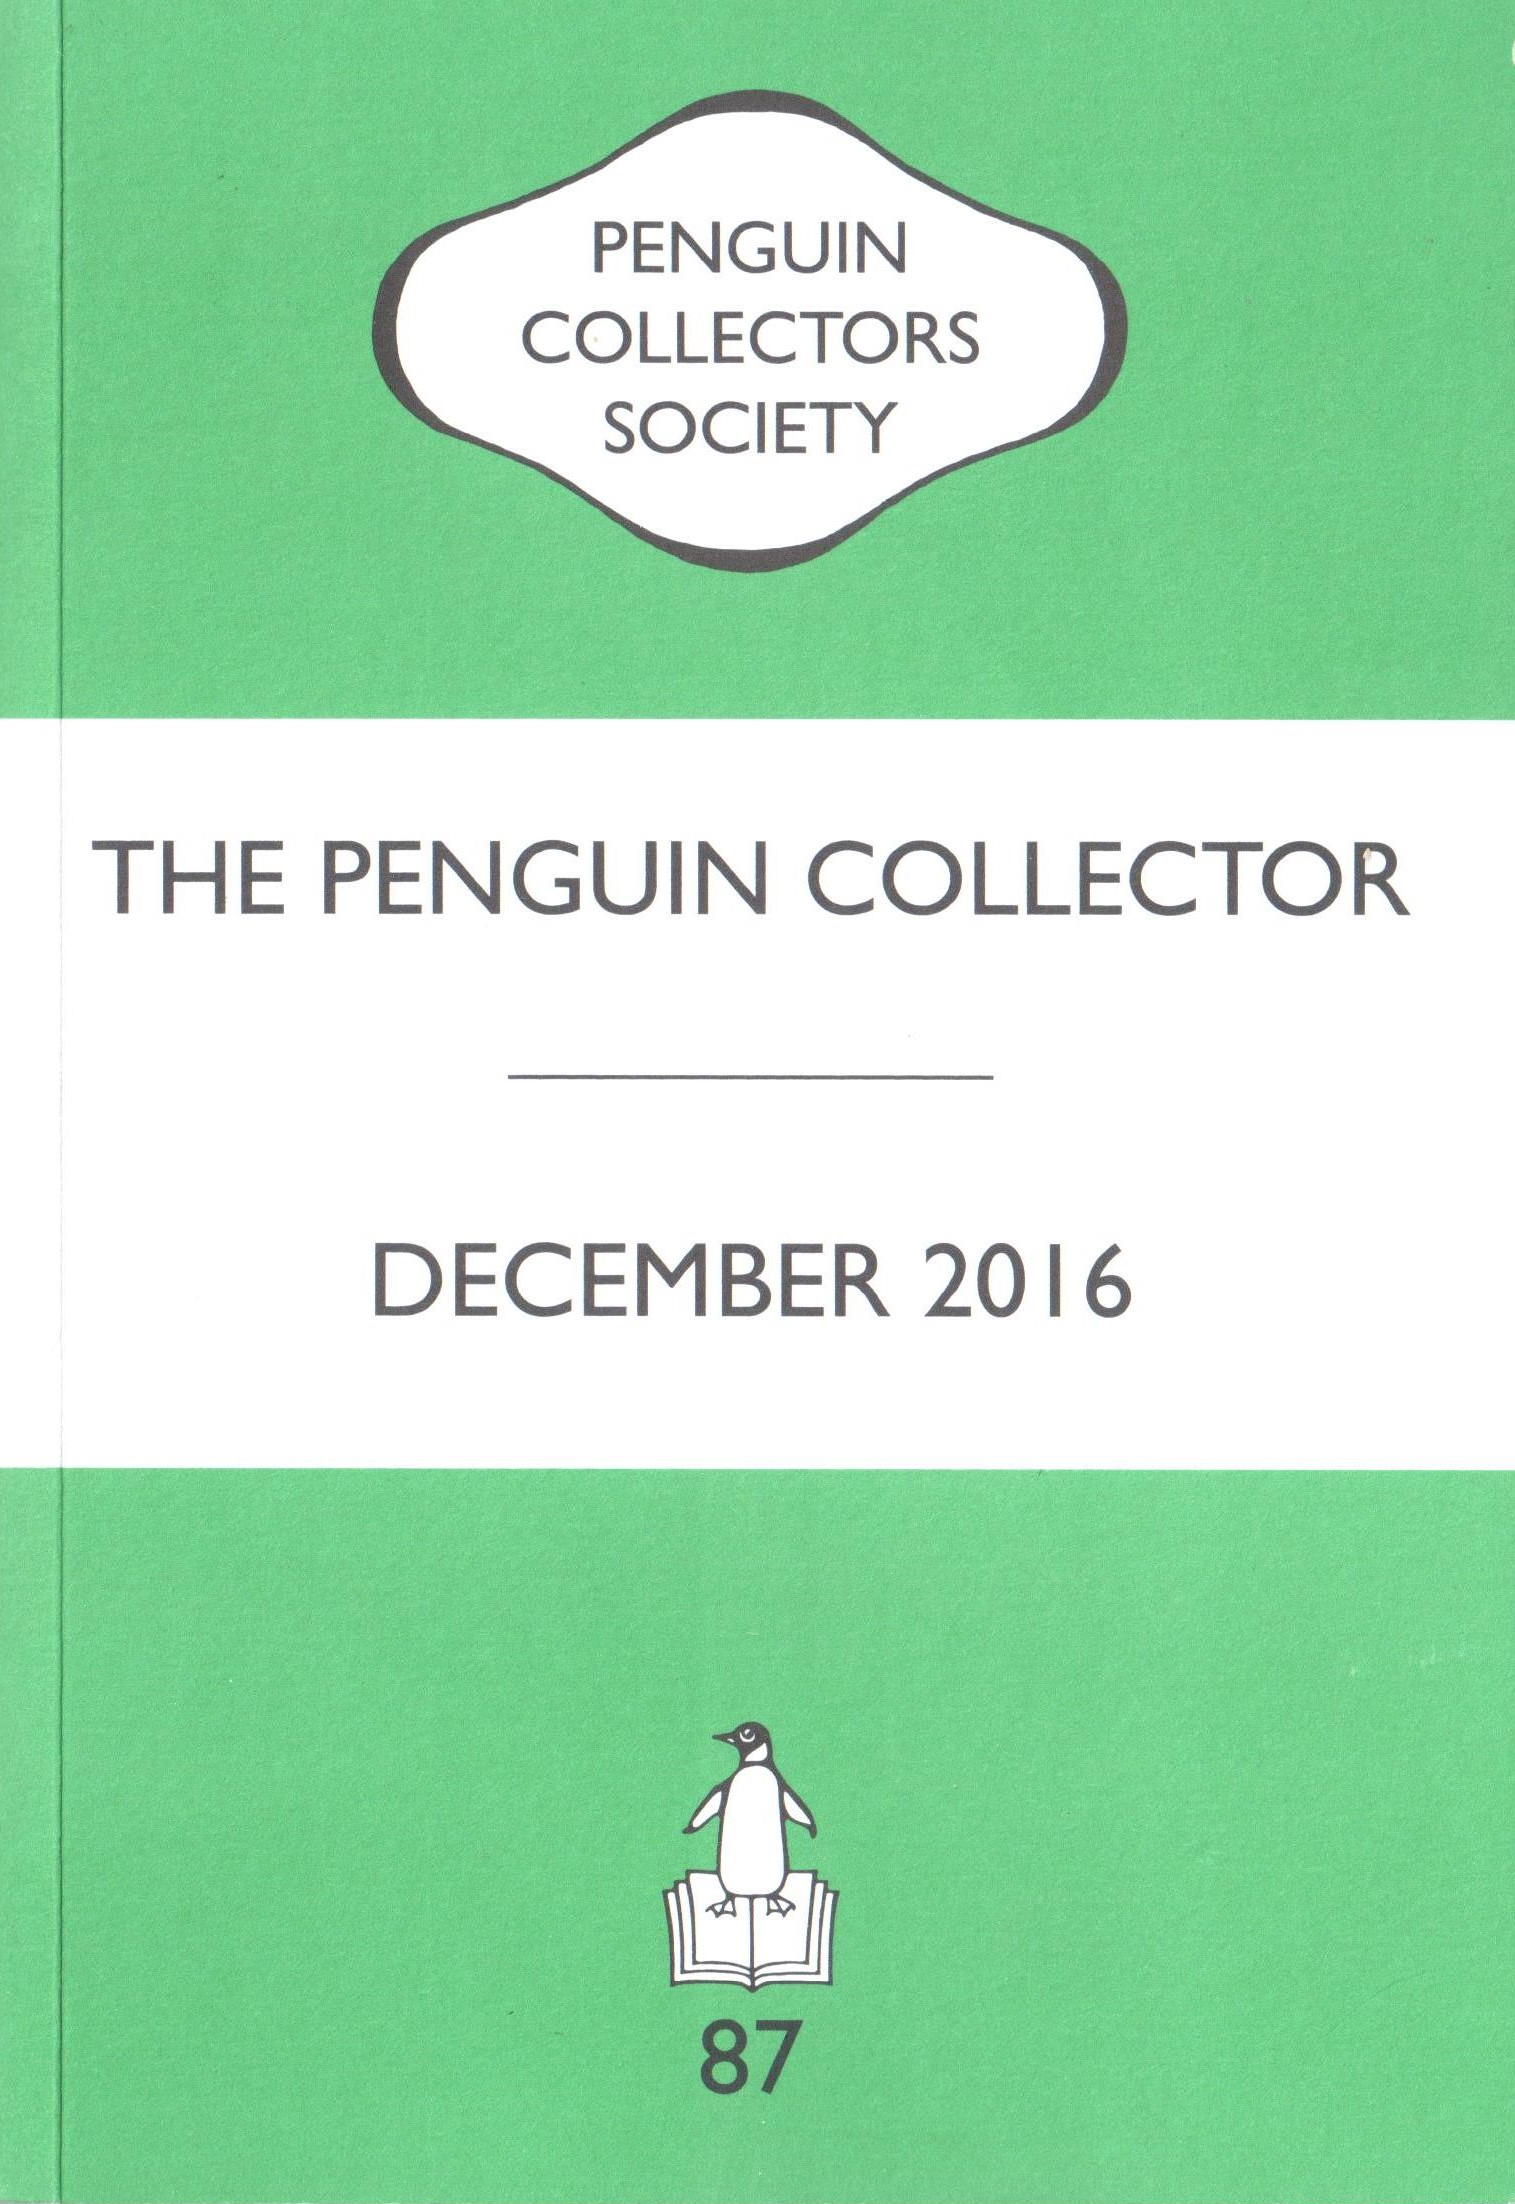 The Penguin Collector 87 Image 1